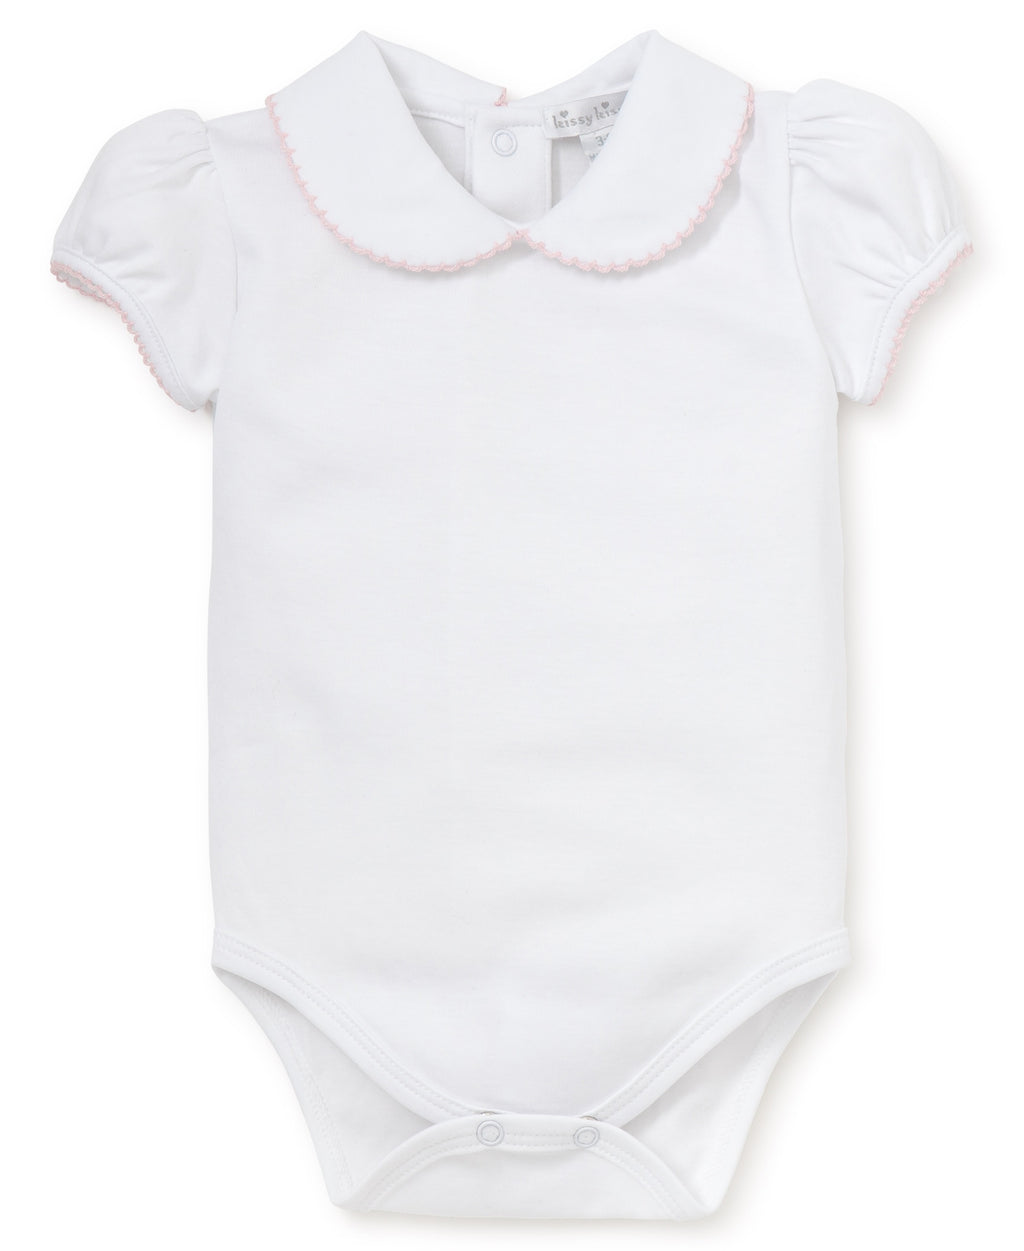 Kissy Kissy Girl's Basics S/S Body w/Collar